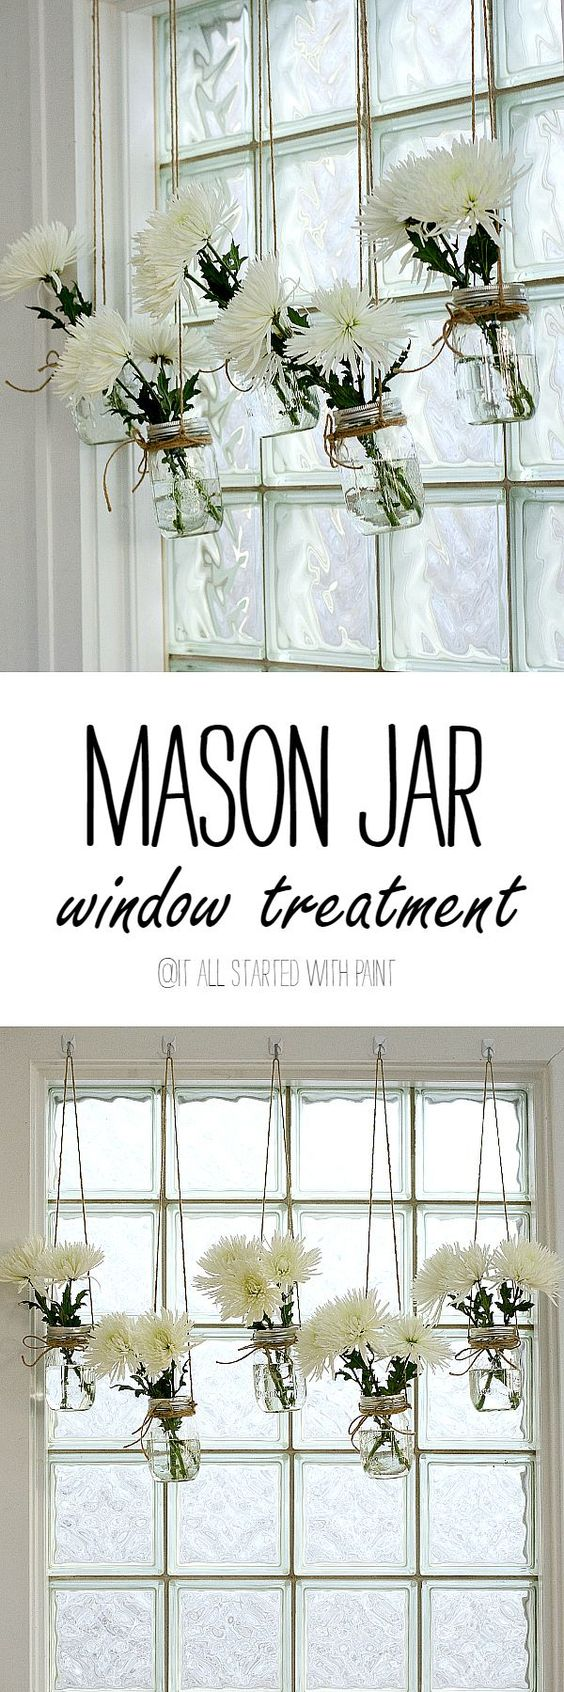 Mason Jar Window Treatment.